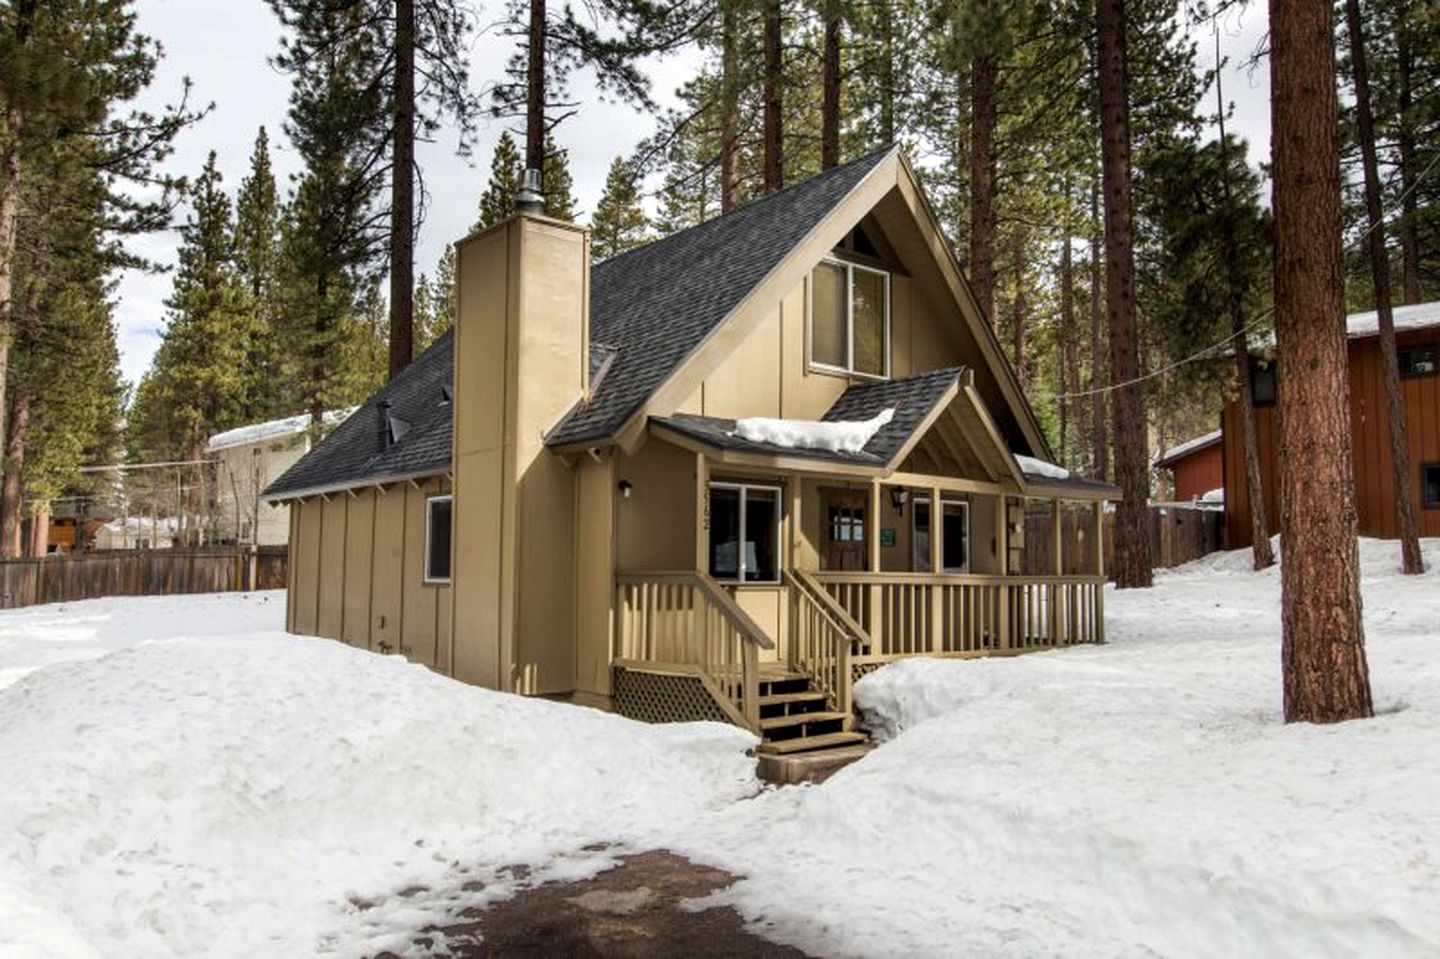 A-Frame Cabins (South Lake Tahoe, California, United States)